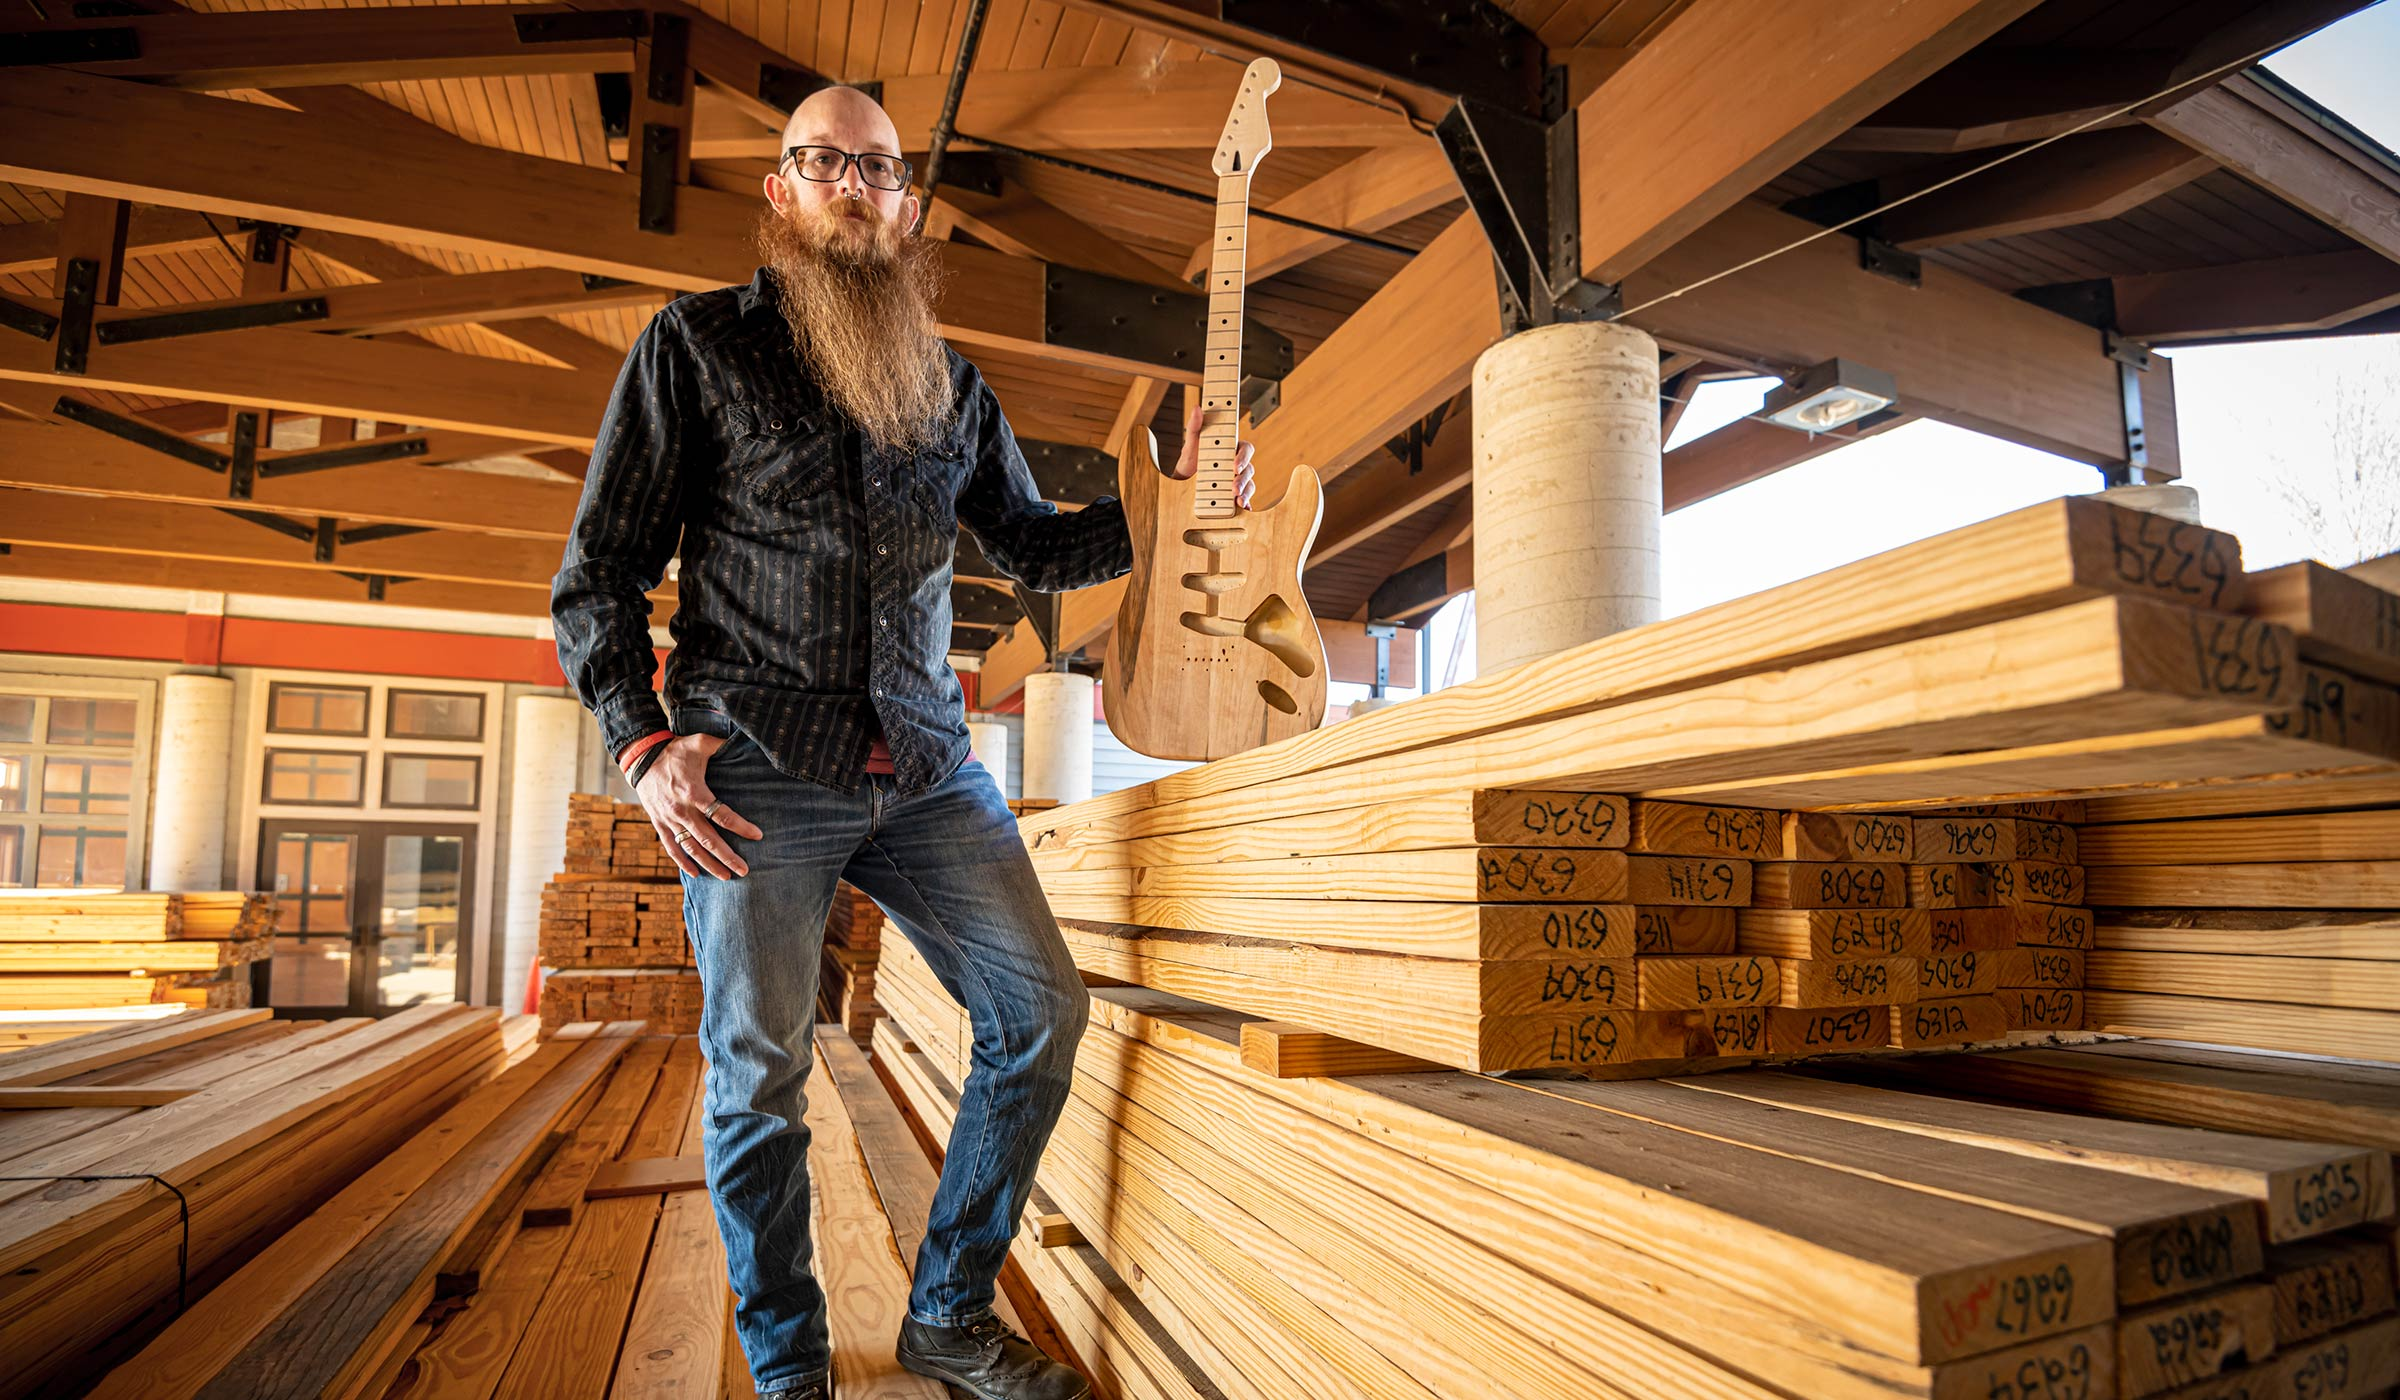 Adam Wade, pictured with a guitar and standing on a pile of lumber.